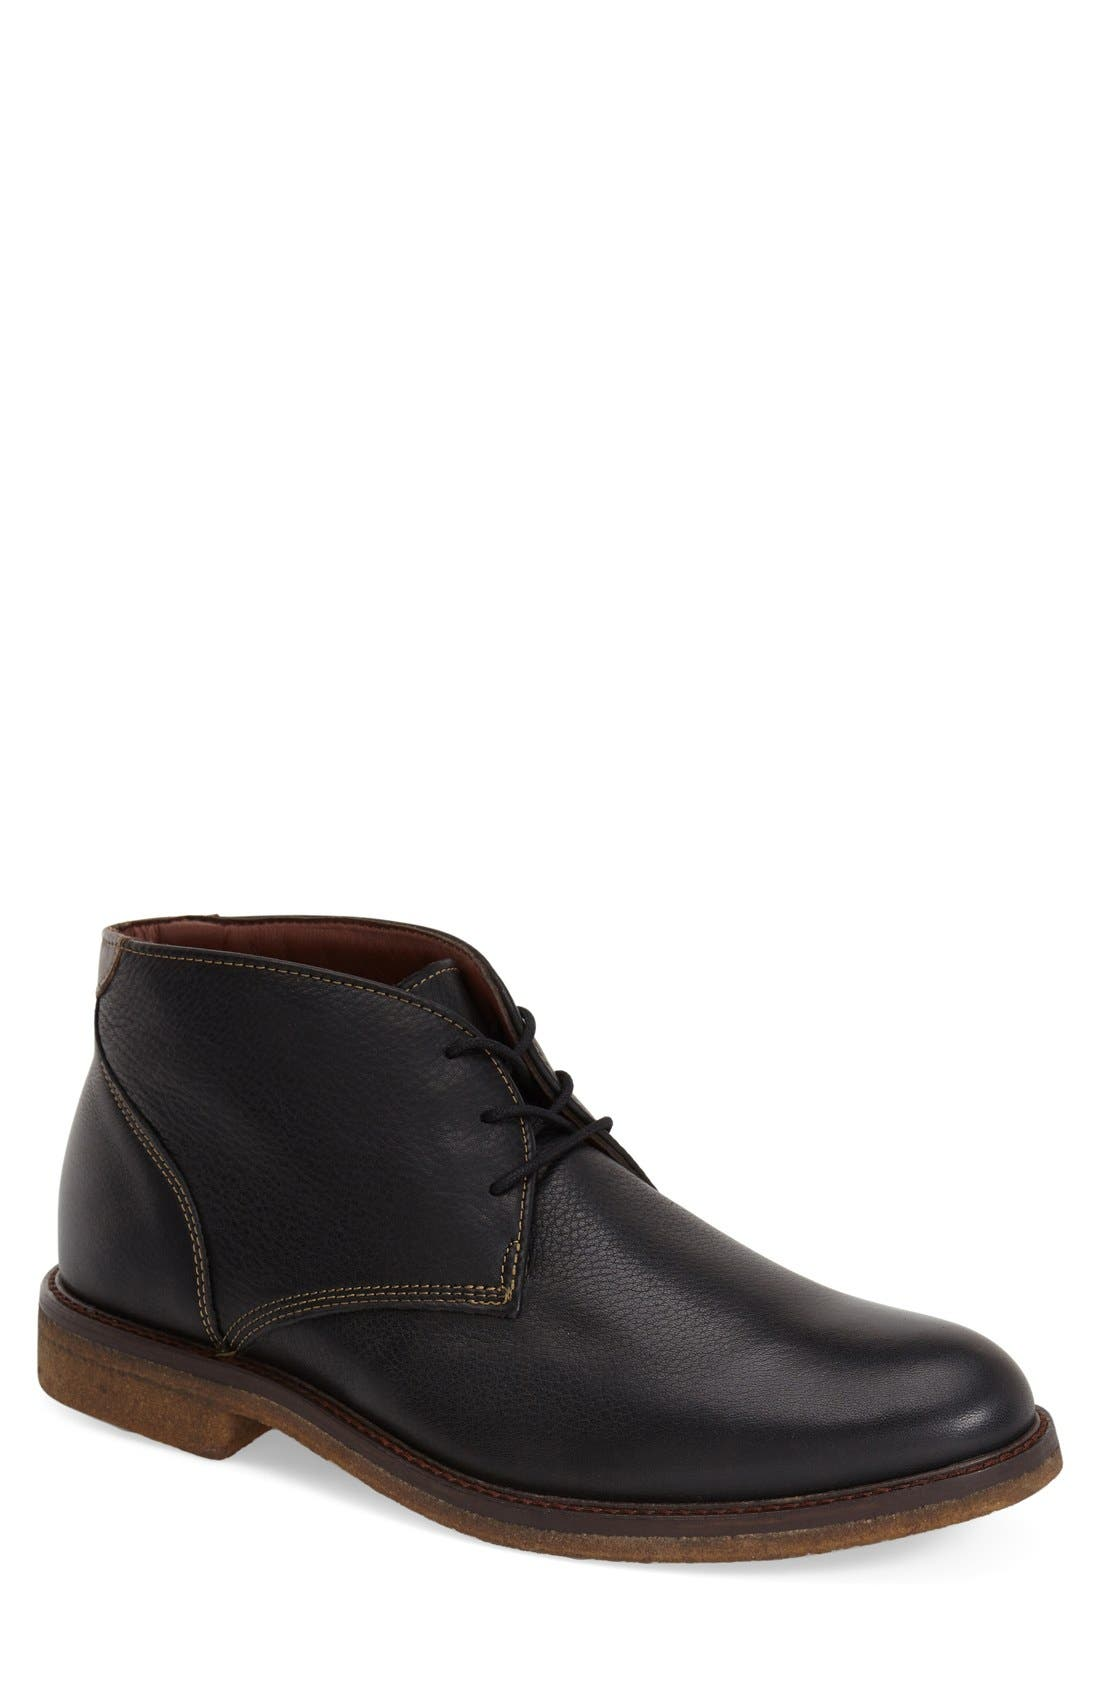 JOHNSTON & MURPHY, 'Copeland' Suede Chukka Boot, Main thumbnail 1, color, BLACK LEATHER